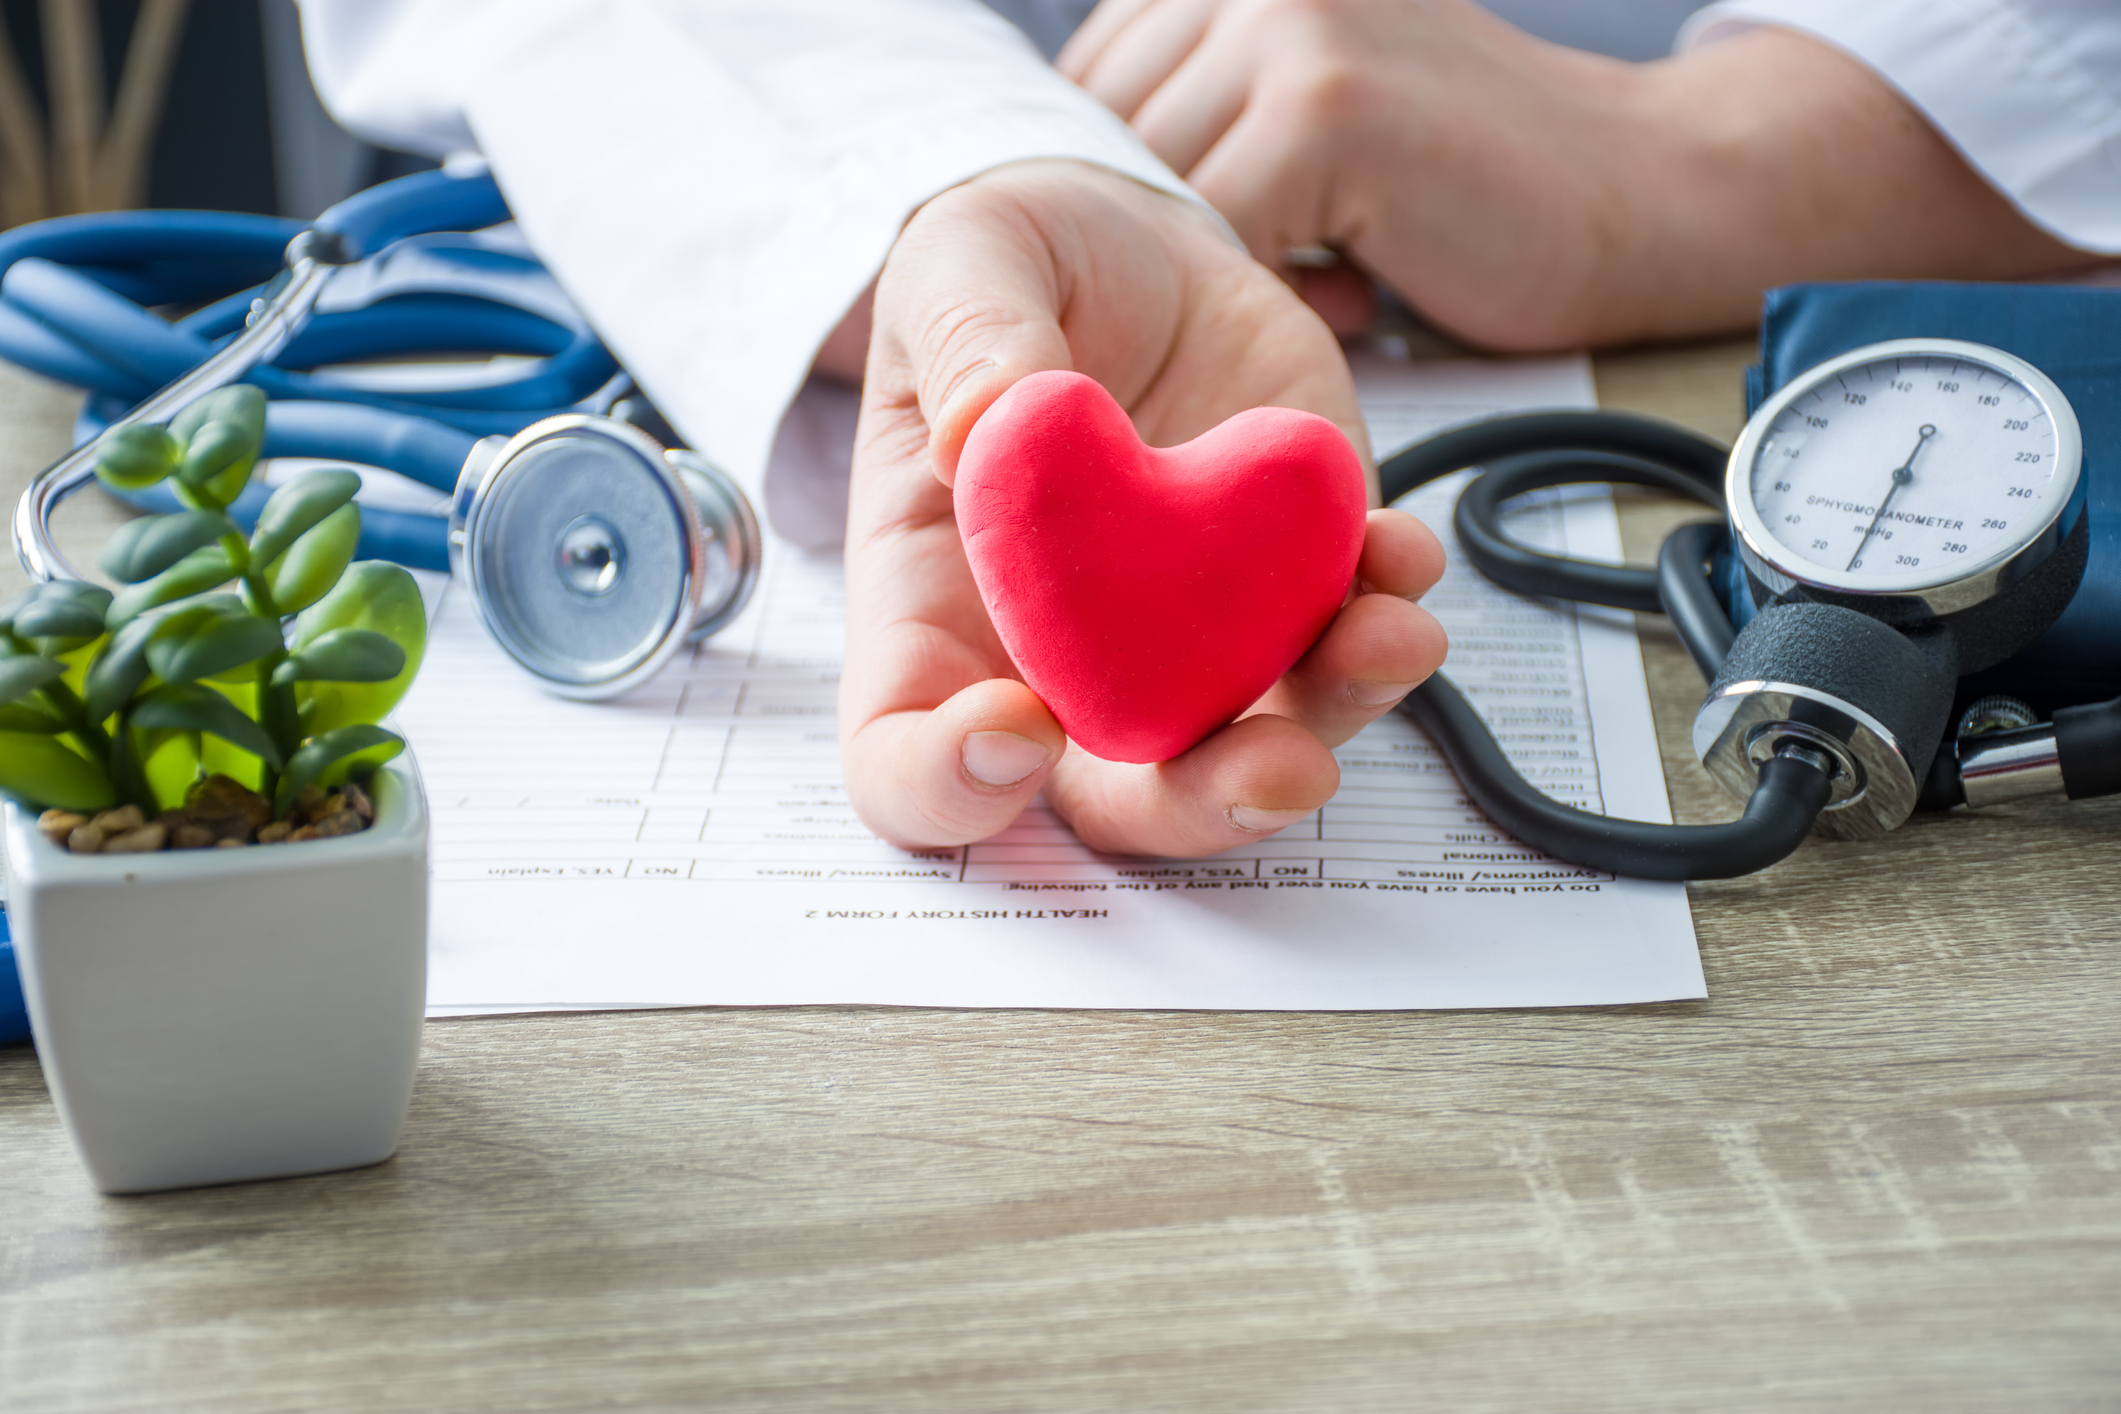 Doctor holding a heart to illustrate heart health